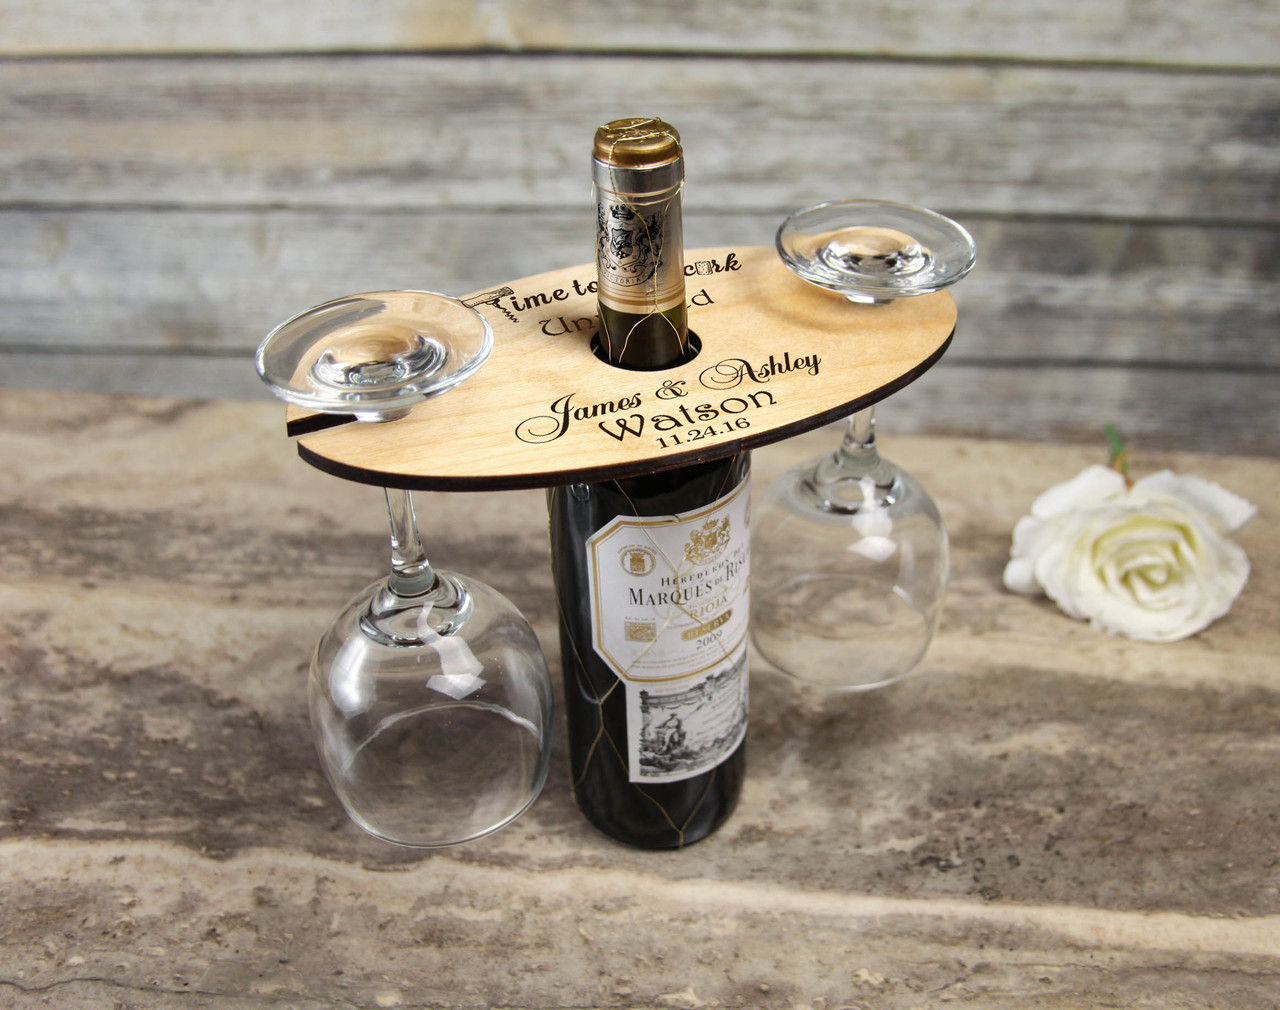 Grpn Spain - Personalized Wine Caddy & Glass holder - Time to uncork